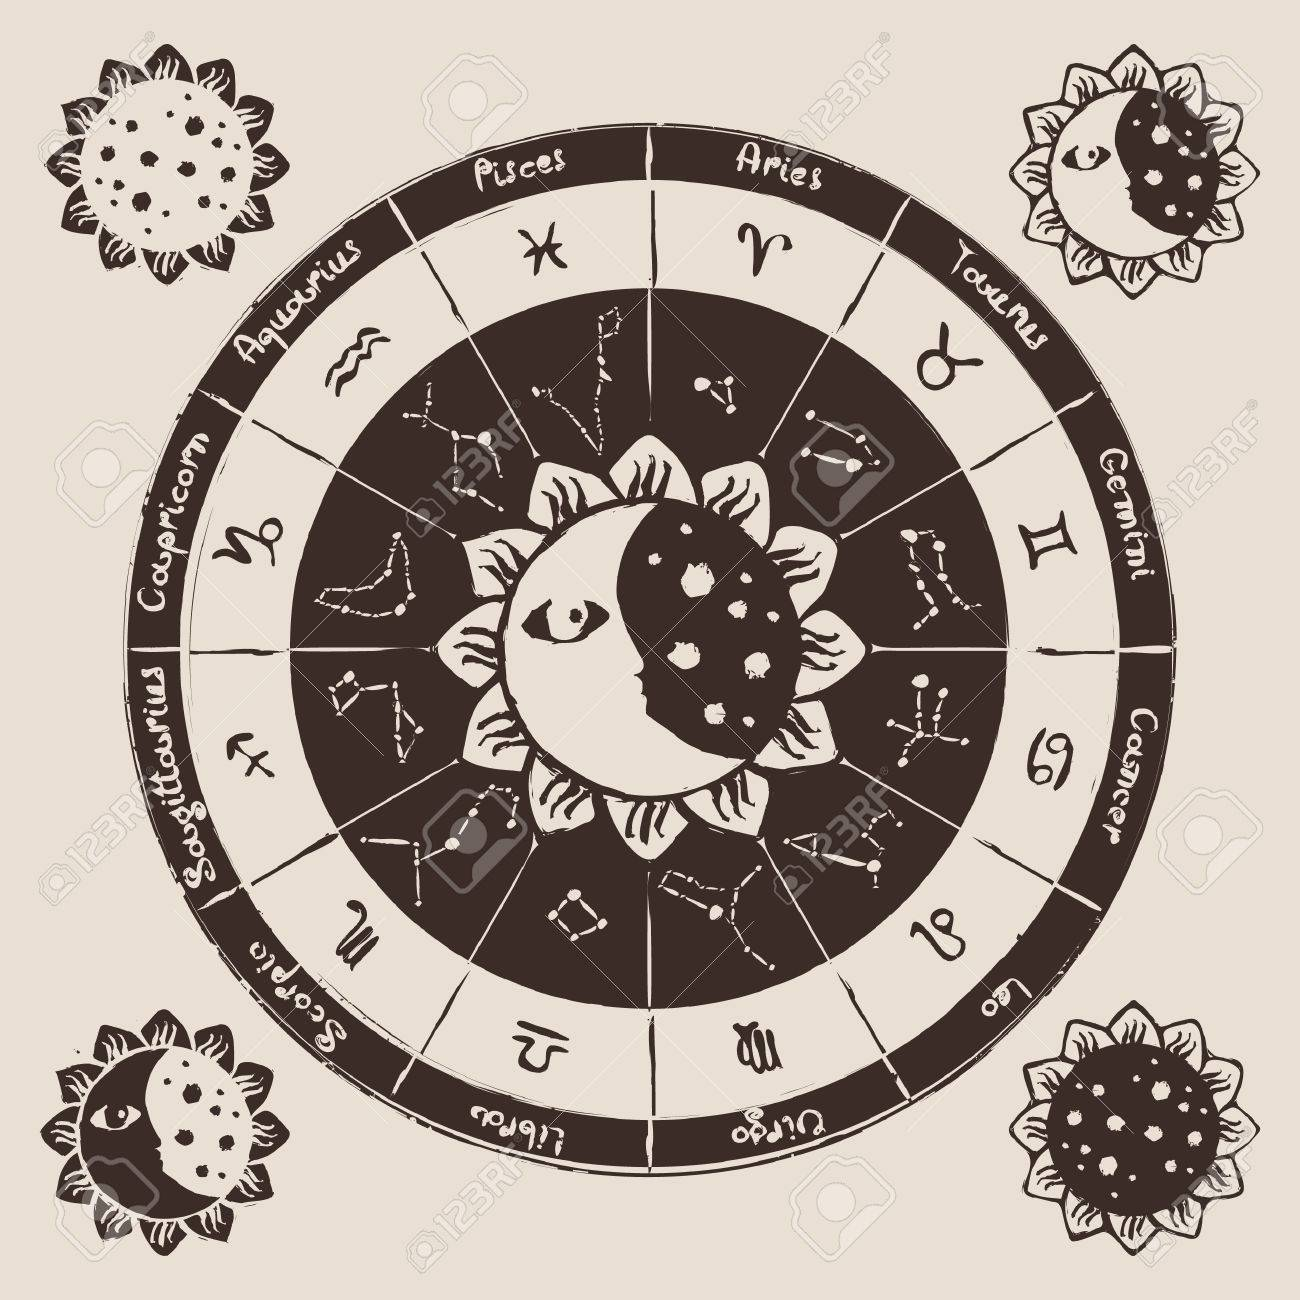 zodiac with the sun, moon and constellations - 25839064